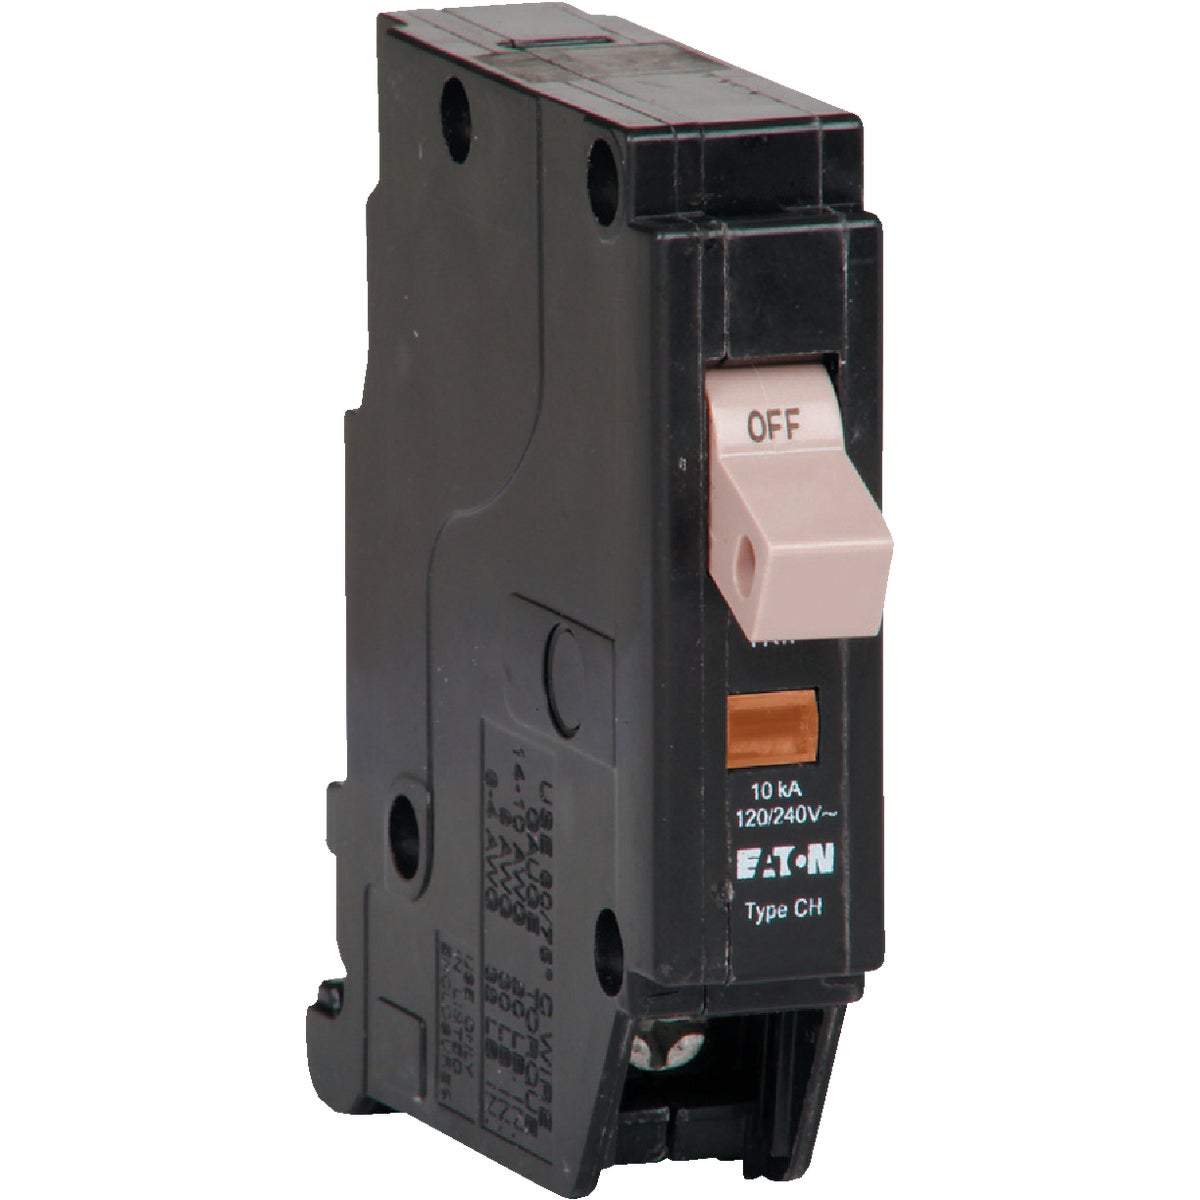 15A SP CIRCUIT BREAKER - CHF115 by Eaton Corporation